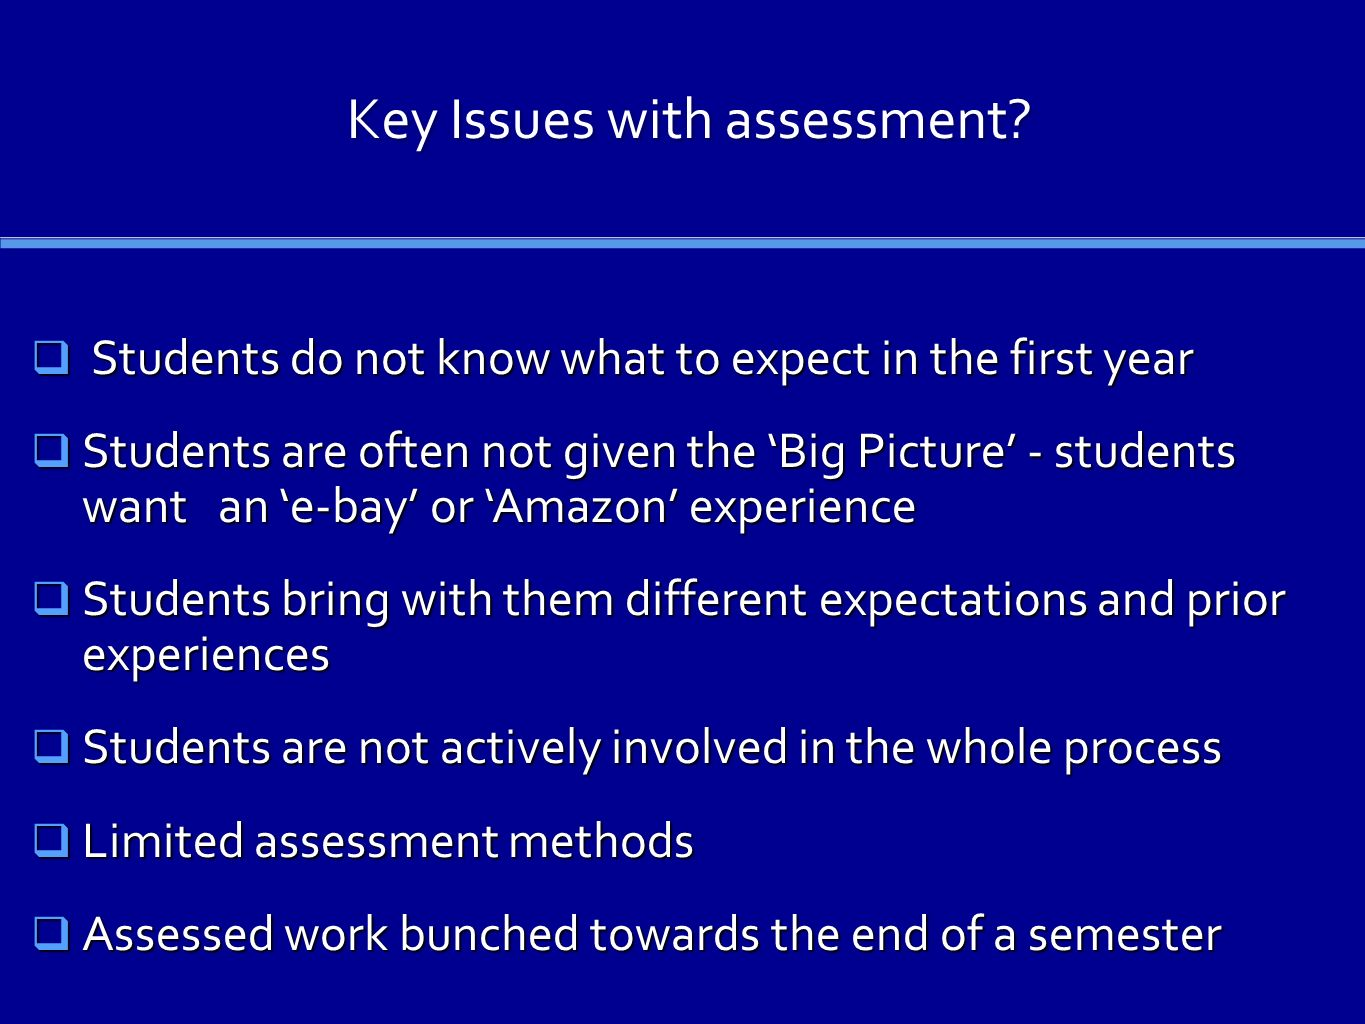 Key Issues with assessment.